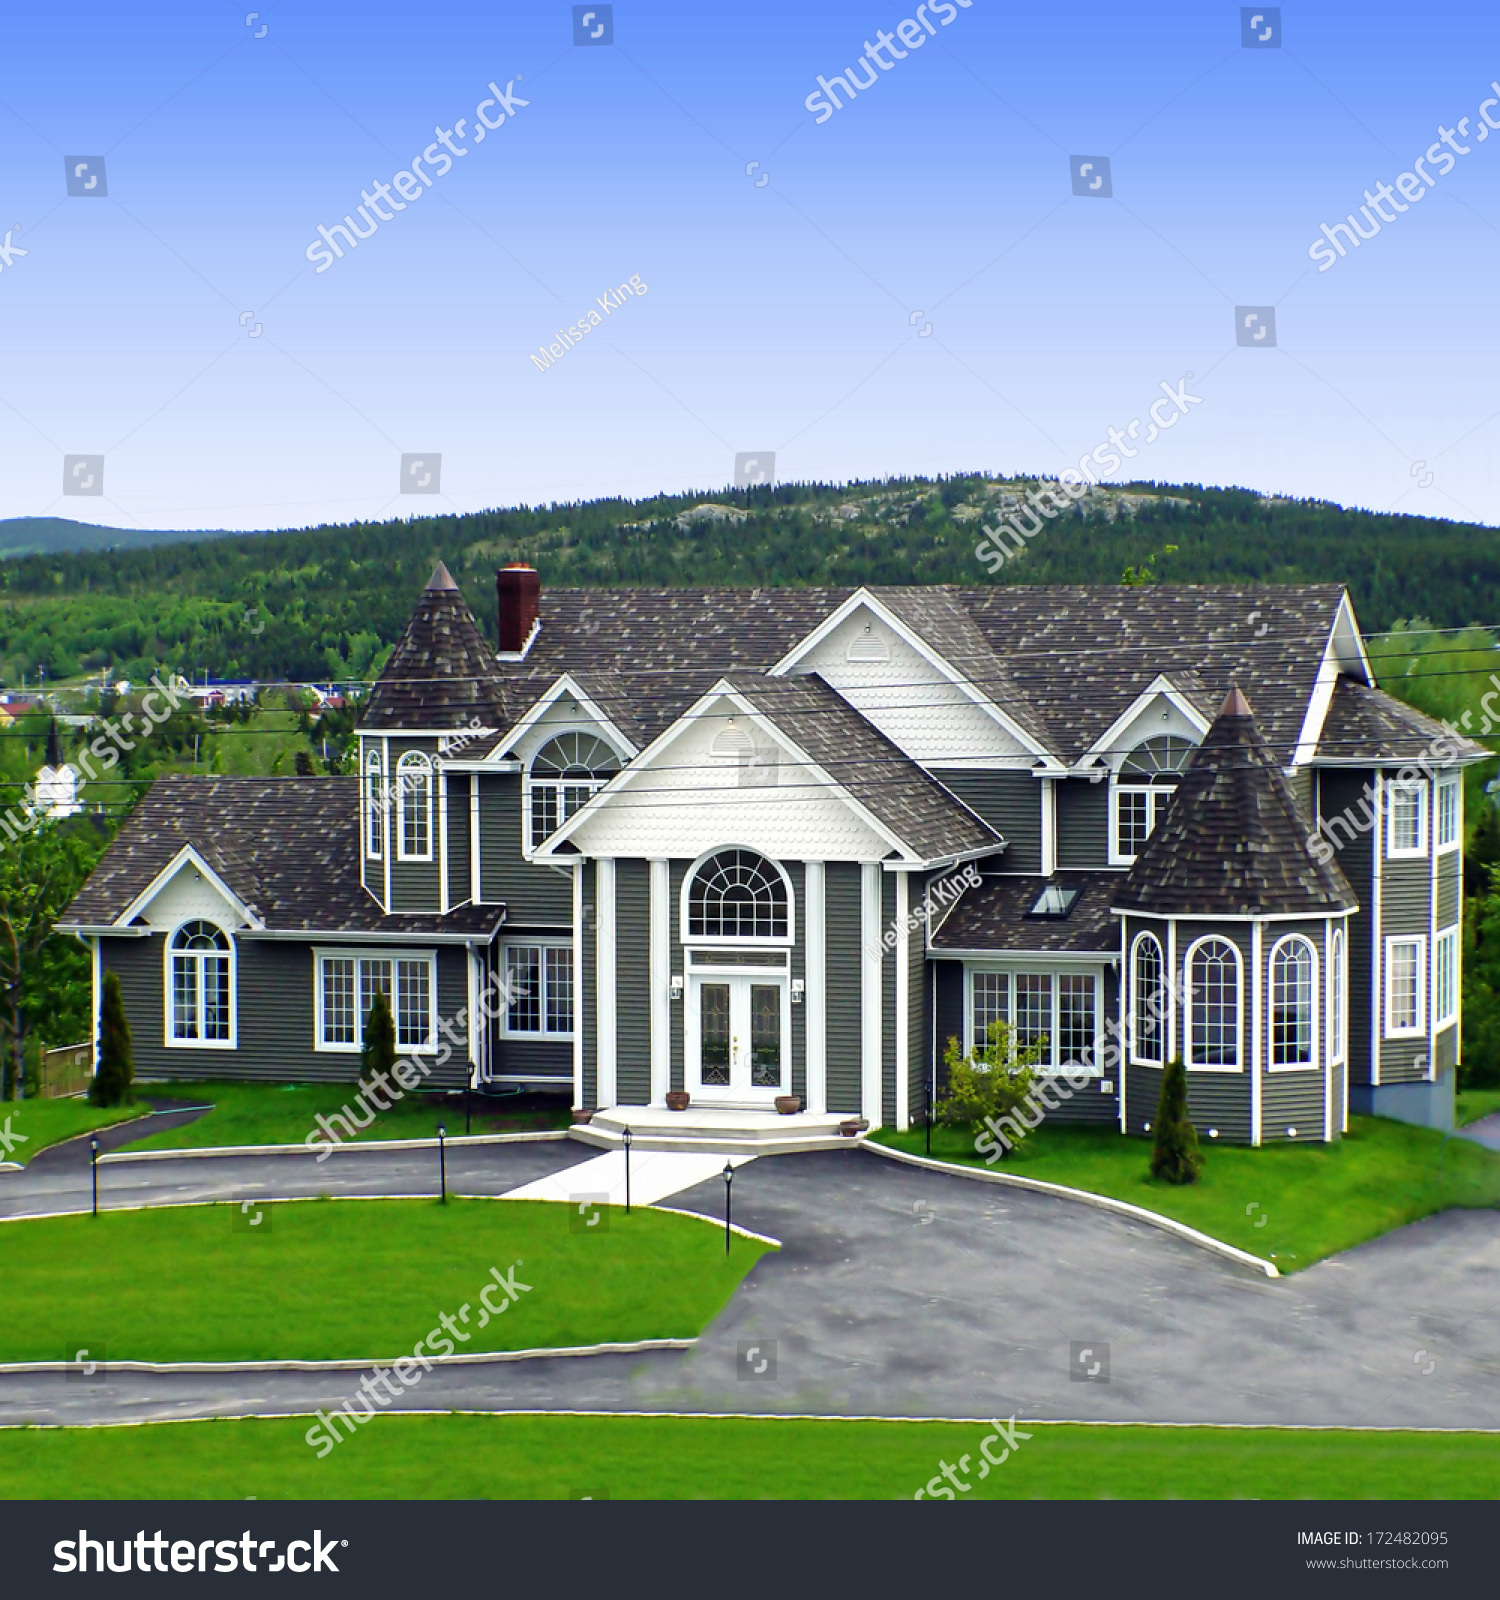 Big house rural newfoundland stock photo 172482095 for Big house images